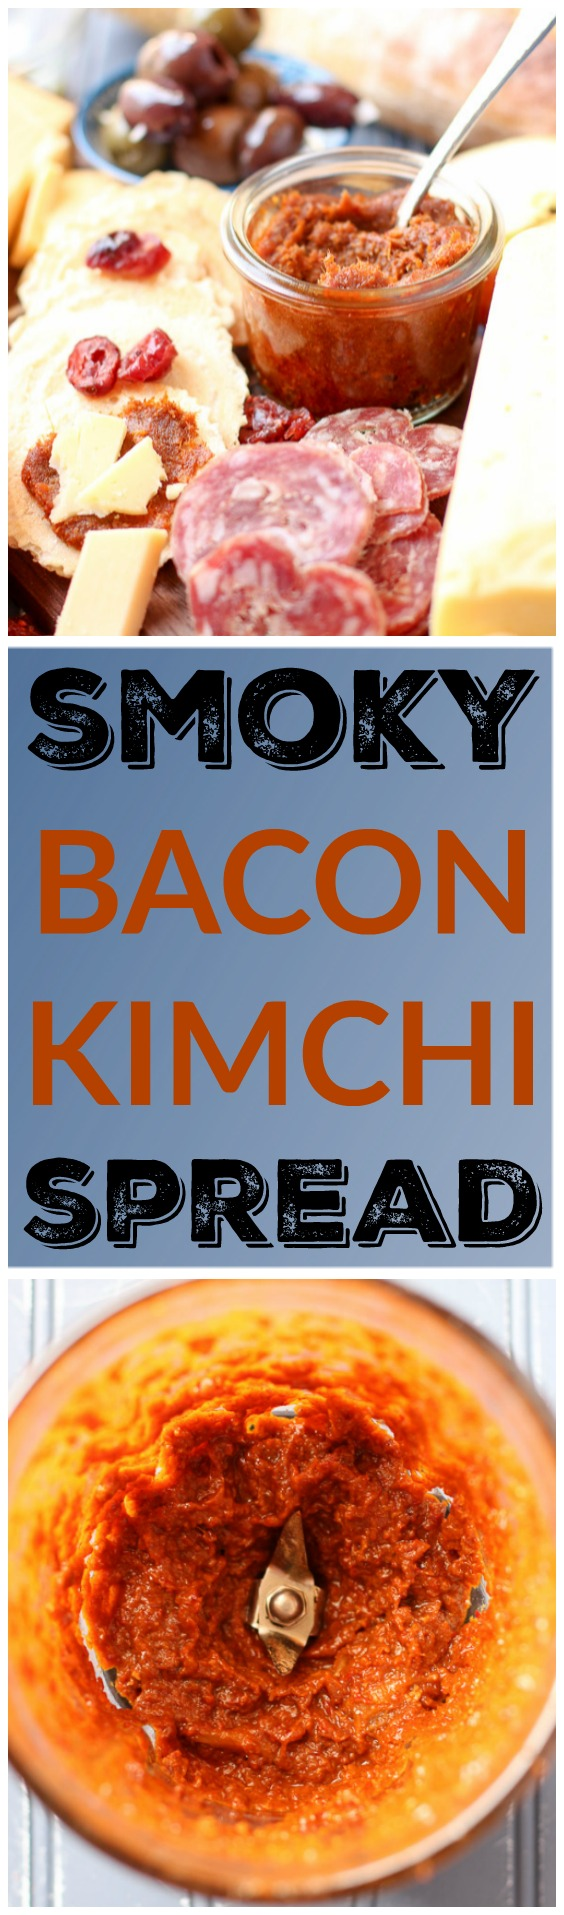 Your party ready cheese board isn't complete without this Smoky Bacon Kimchi Spread. Salty bacon and spicy kimchi join forces to make one flavorful spread. It's as simple as cook, blend, serve! www.kimchichick.com